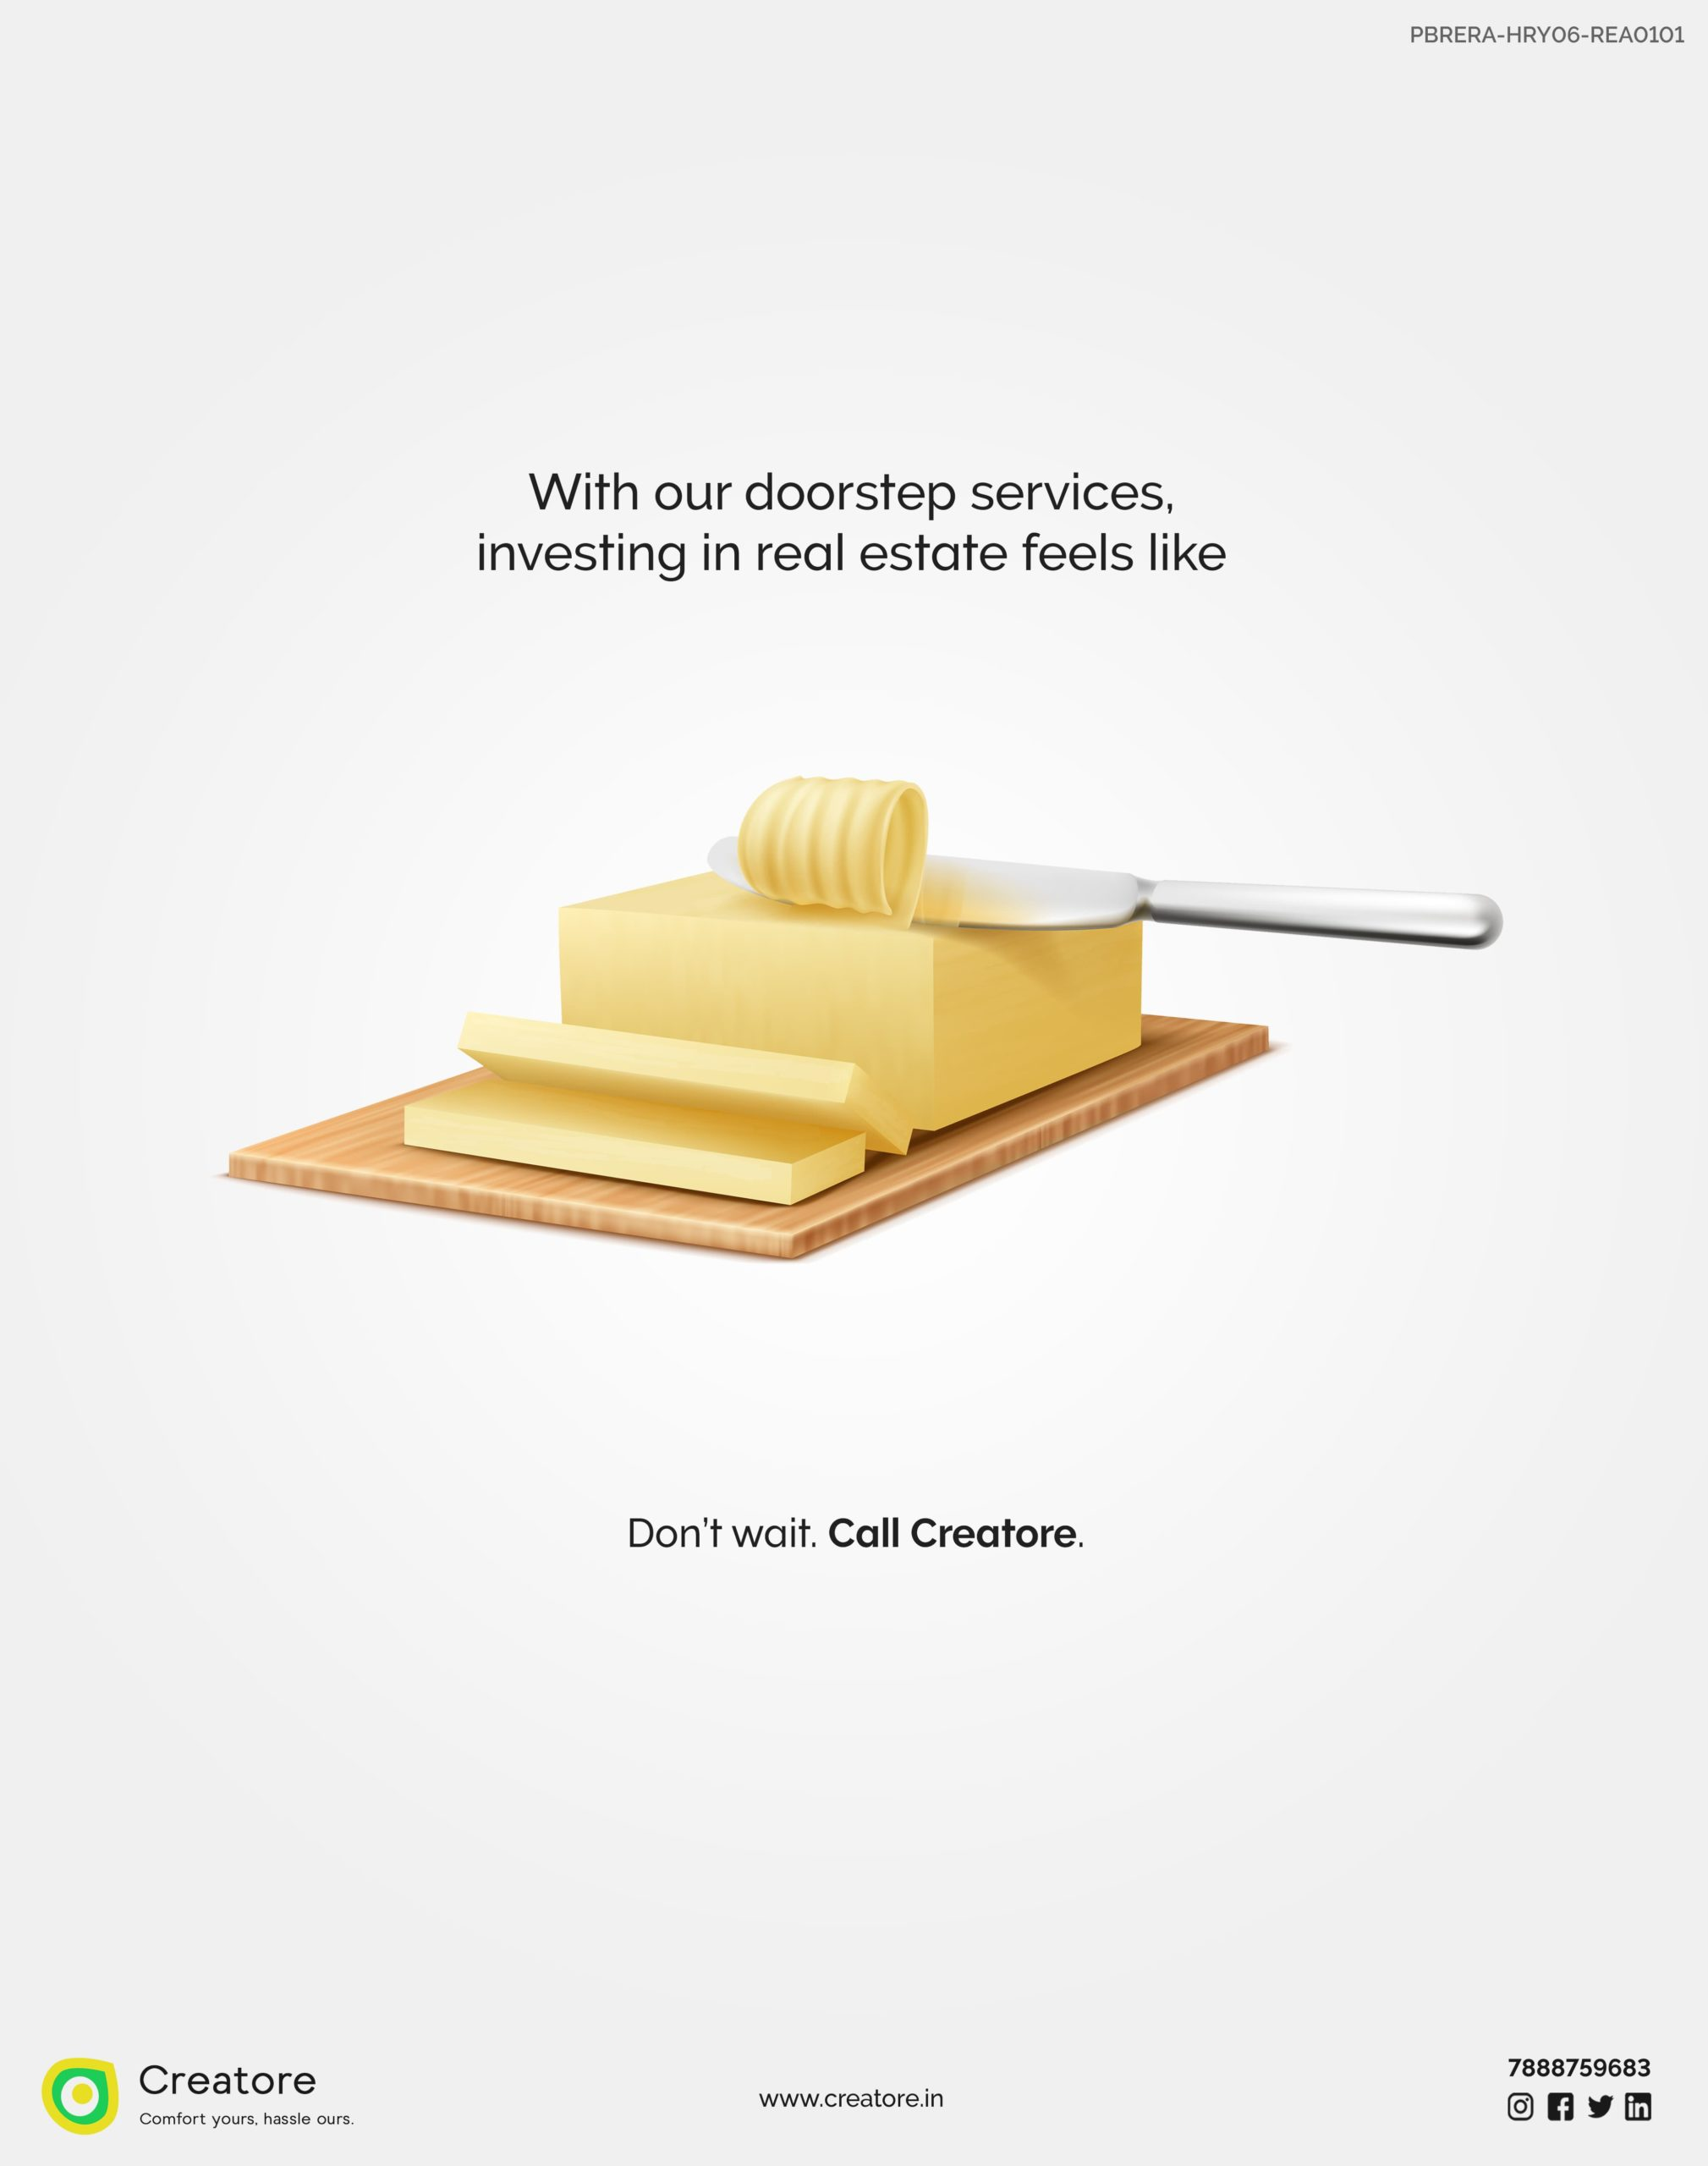 Creative Advertising and Marketing Agency Creative Ad Services Like Butter